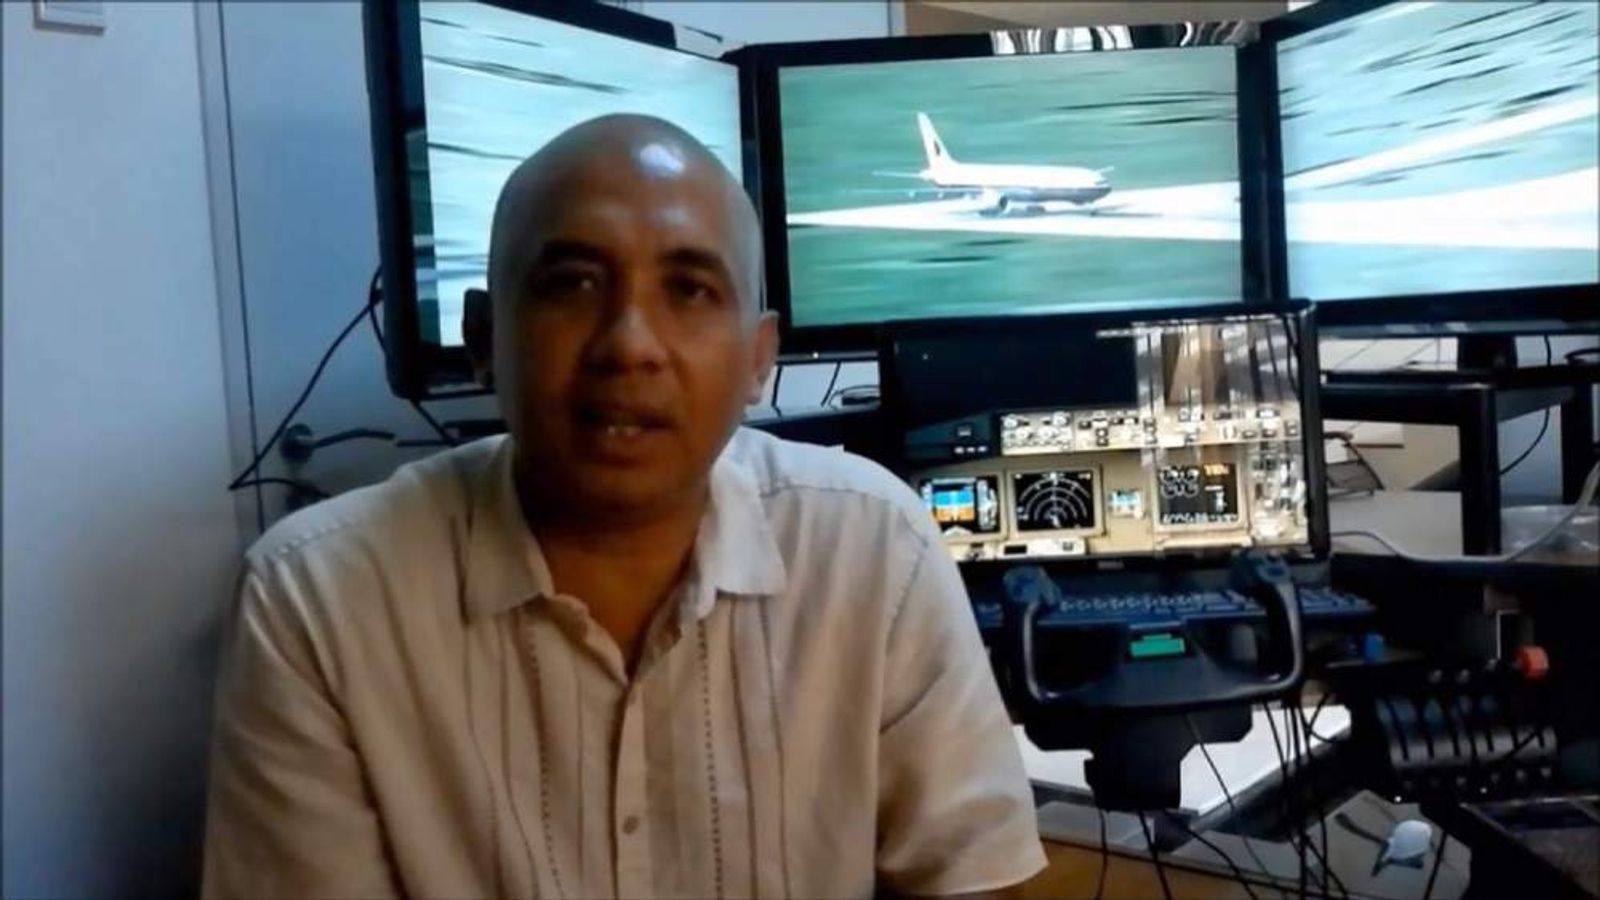 The home of one of the pilots of MH370, Zaharie Ahmad Shah, was searched as part of the investigation.